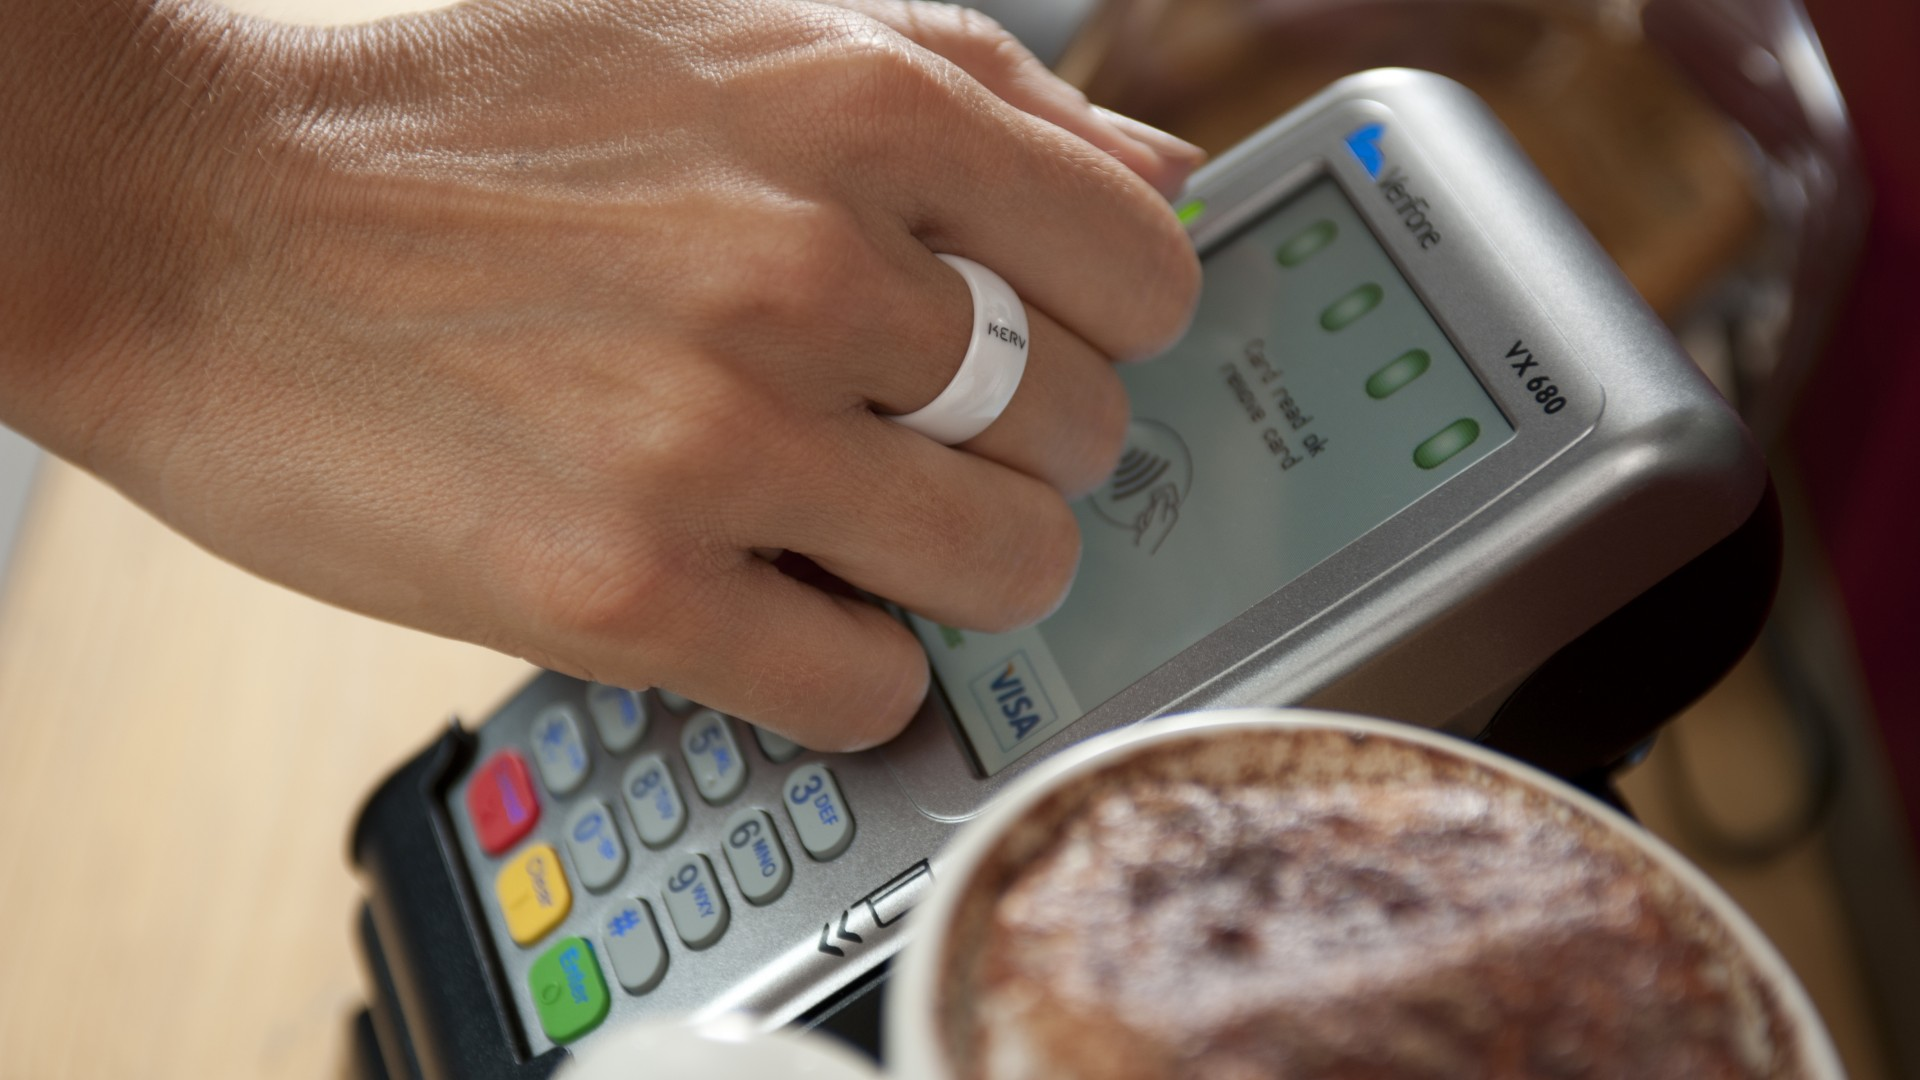 The Kerv Contactless Ring